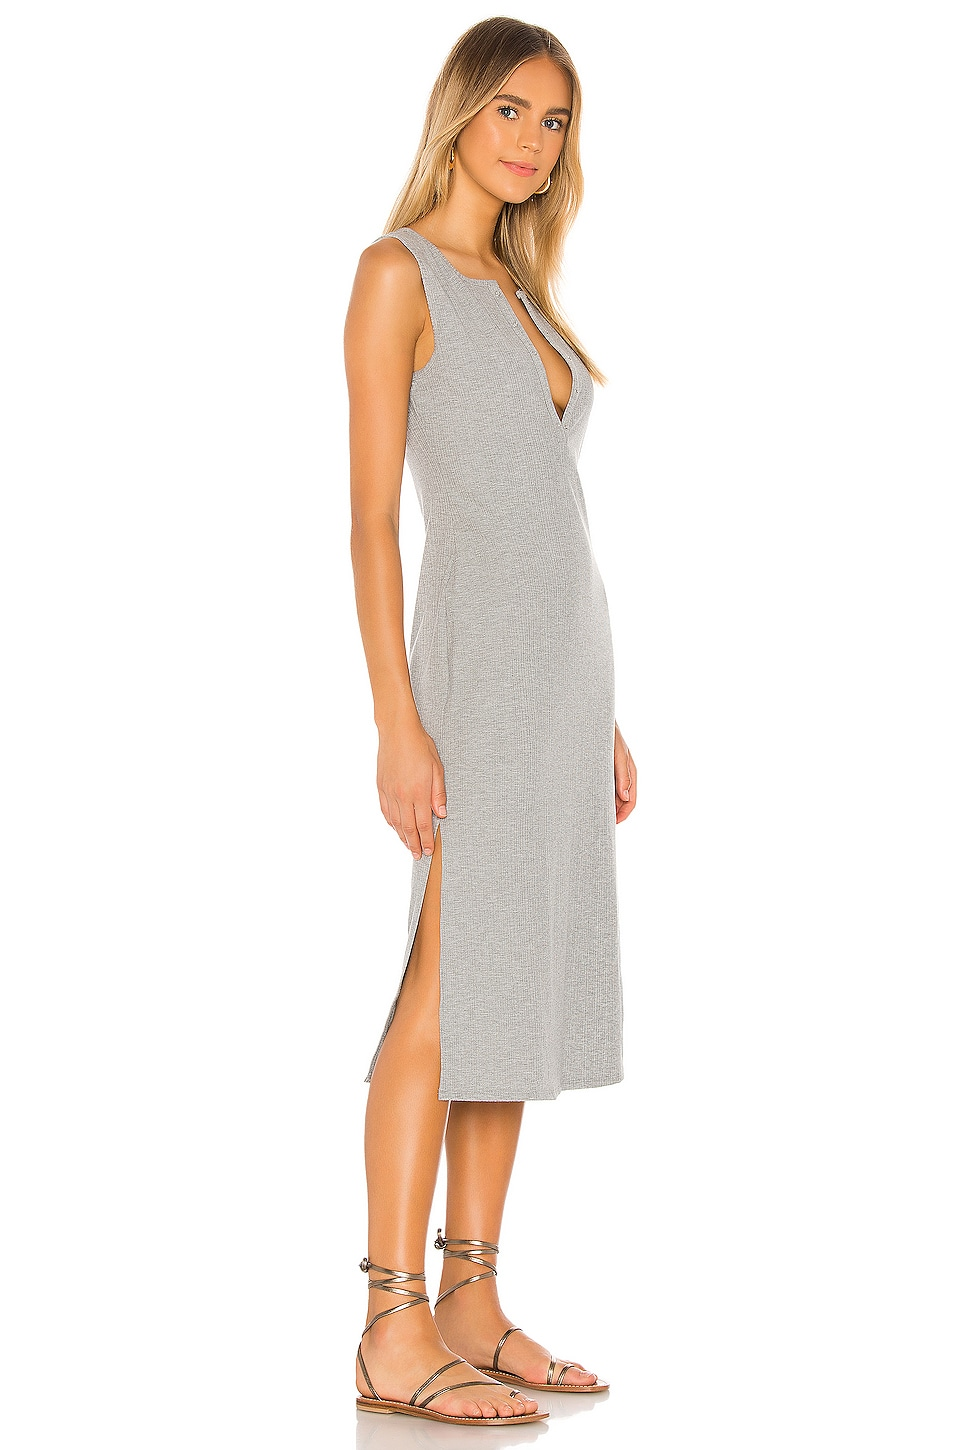 Day Shirt Sleeveless Dress, view 2, click to view large image.